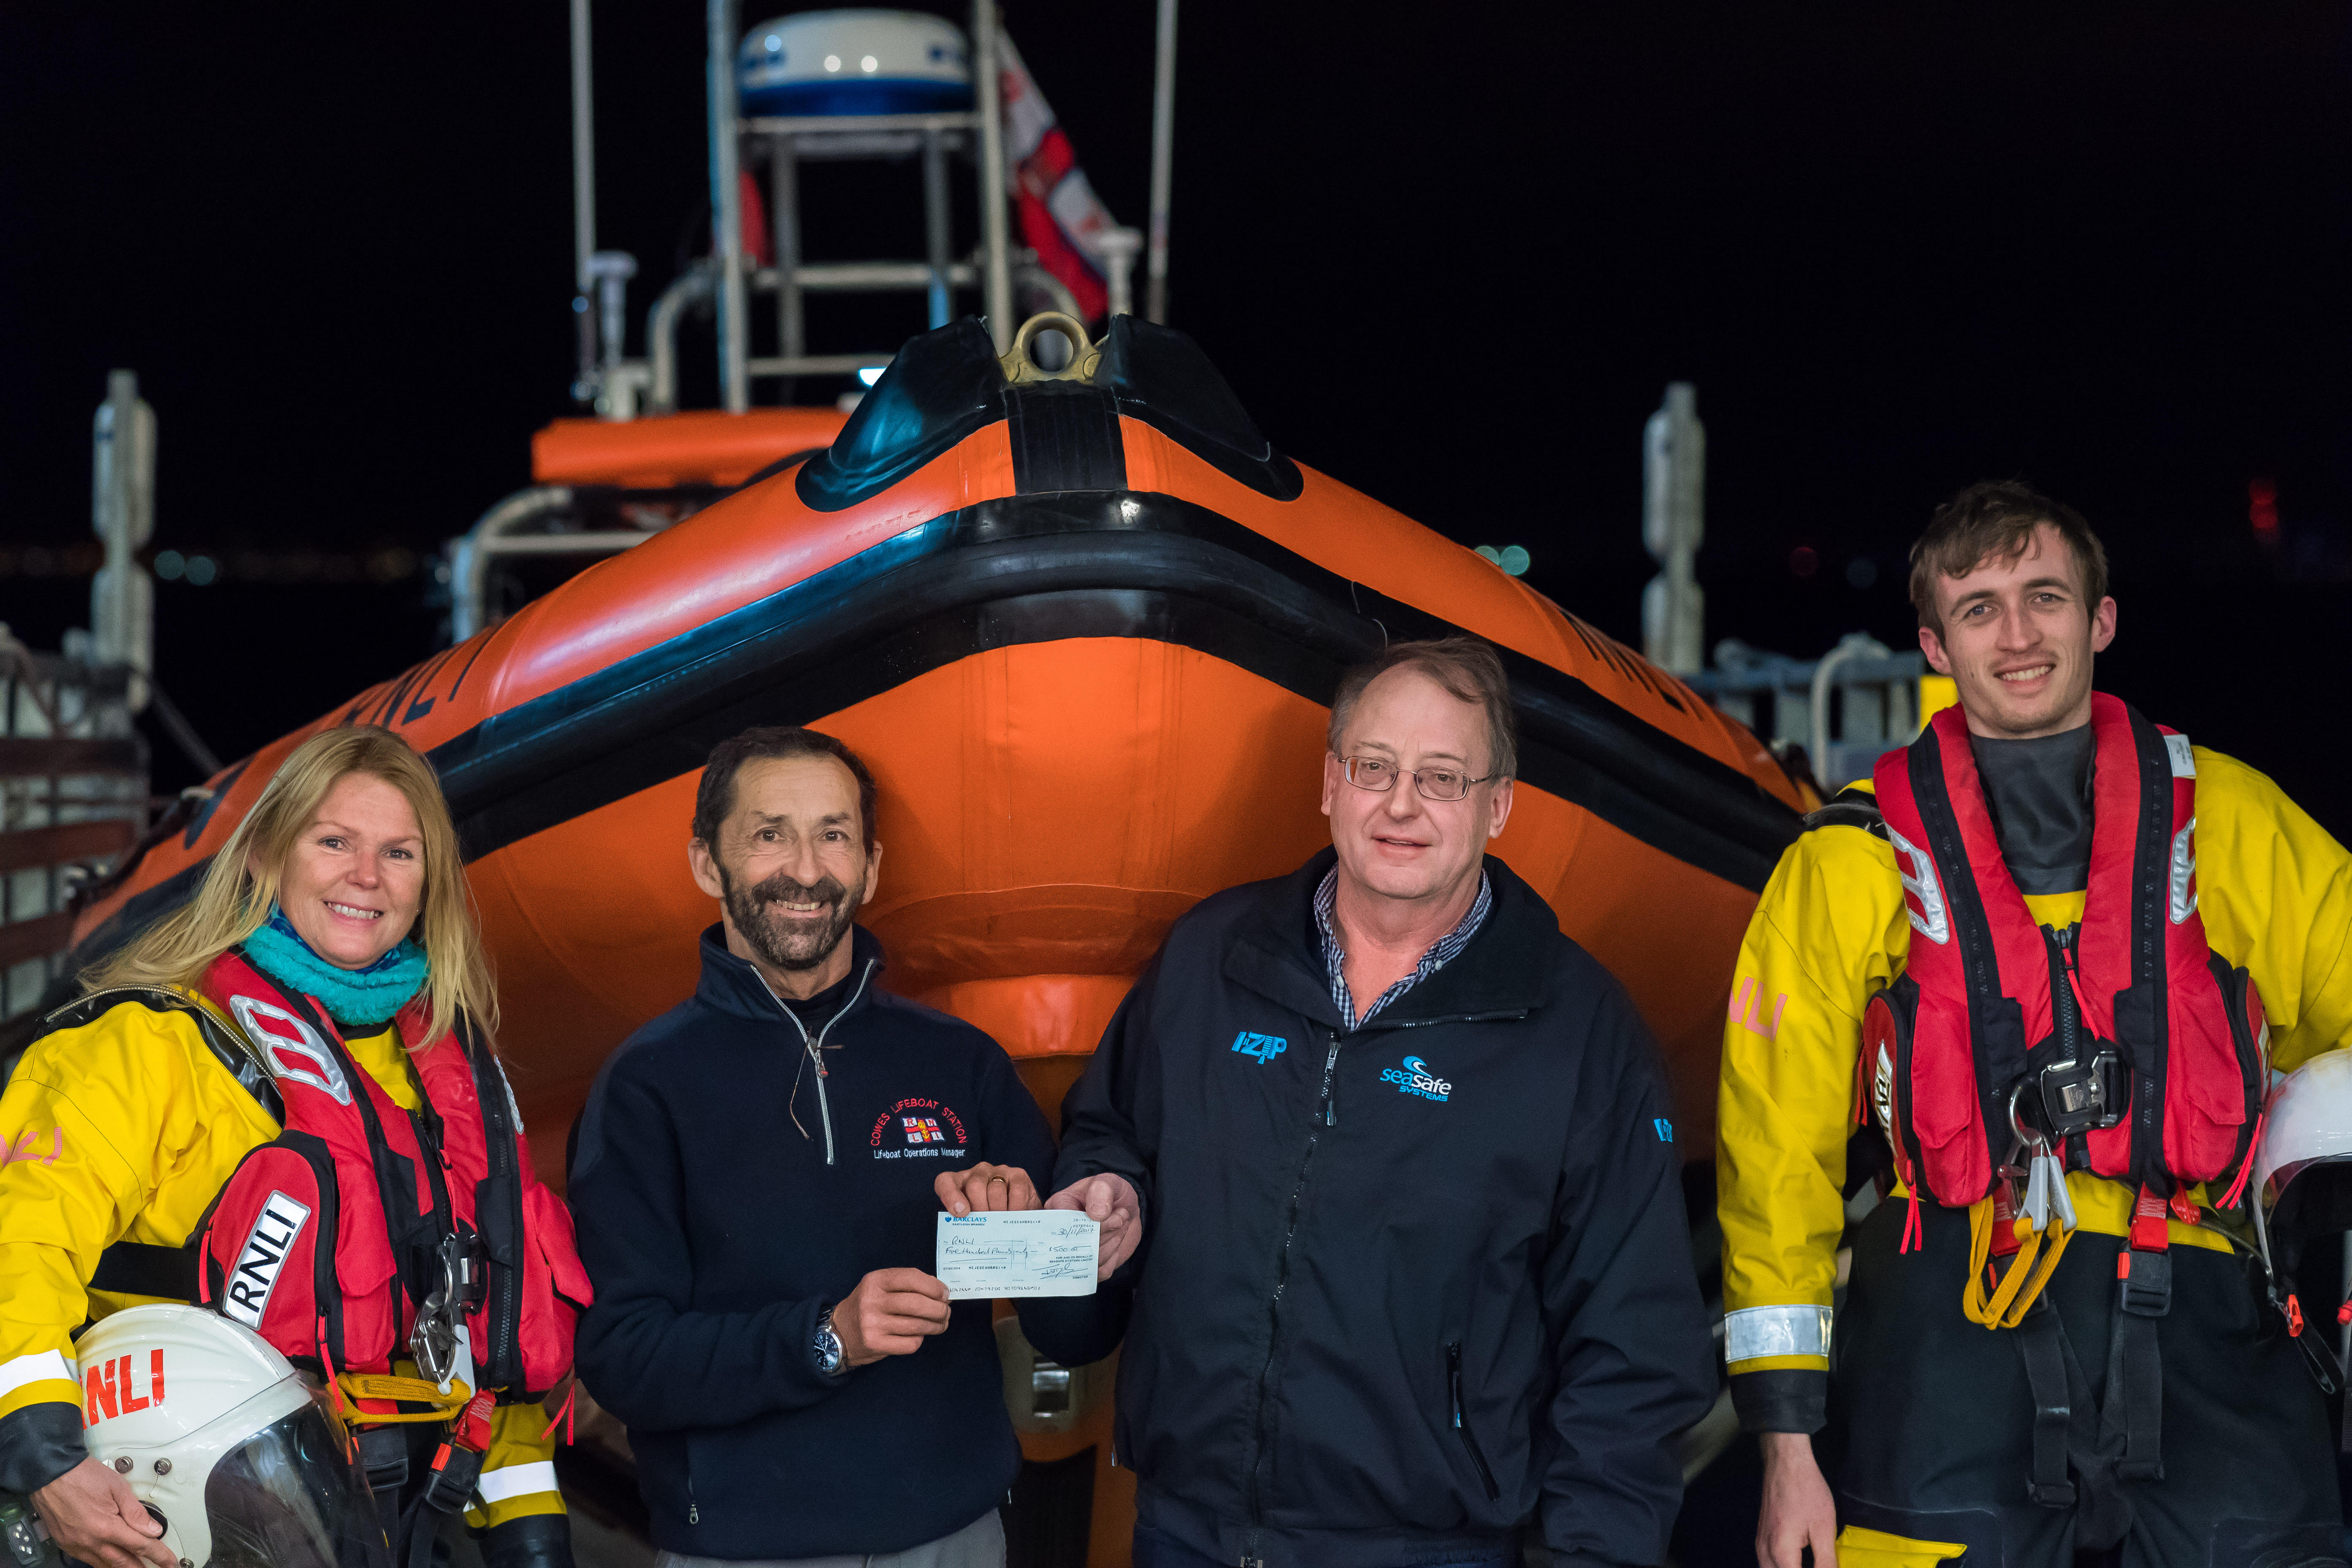 Cheque presentation to Mark from Seasafe managing director Jeremy Dale, with crew members Andrea Vaughan and Myles Hussey also in attendance.